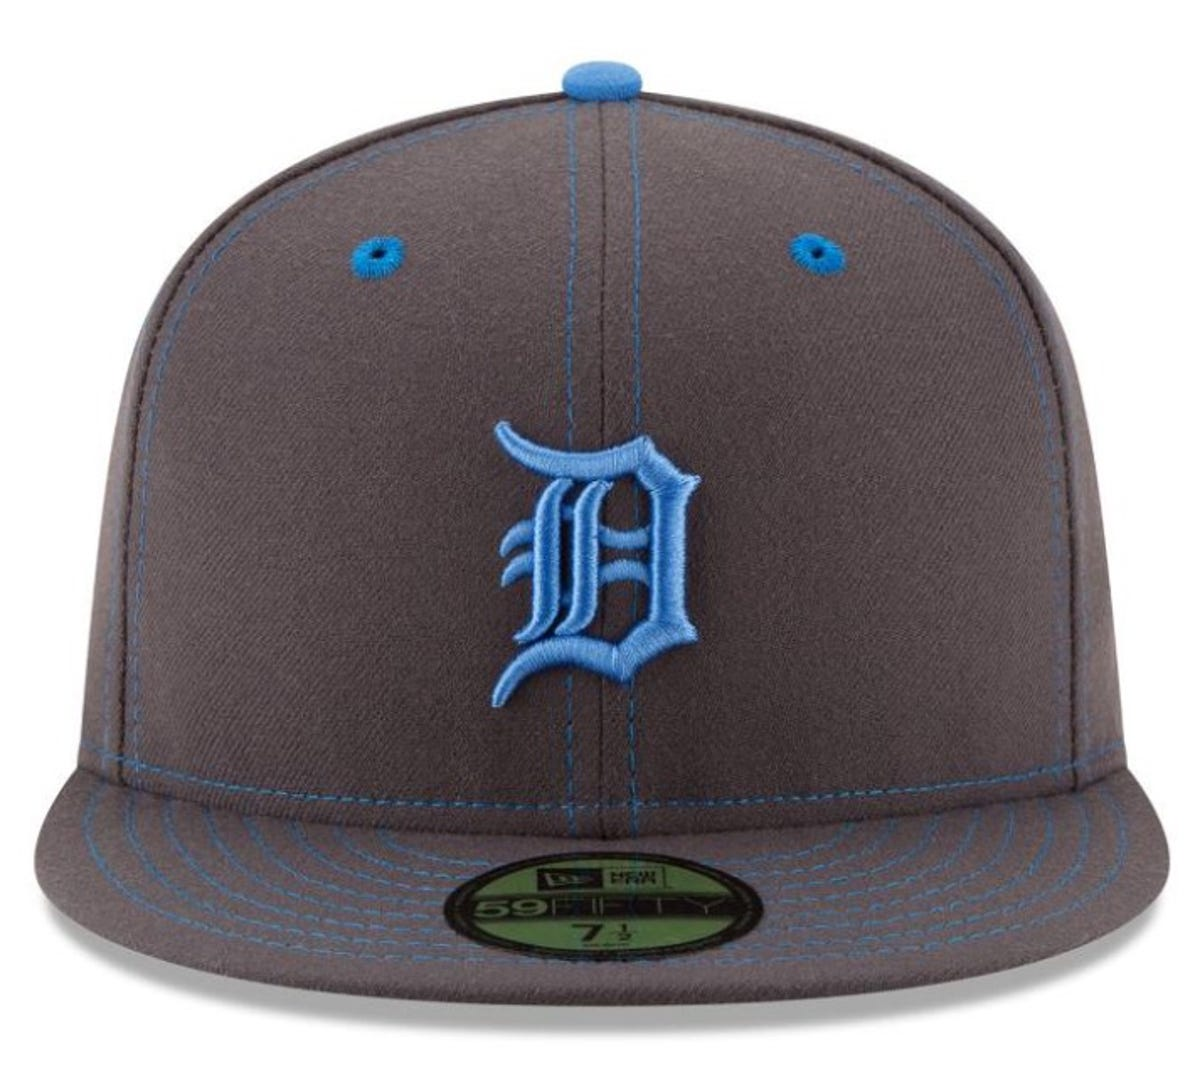 7e9e4119 Check out the Detroit Tigers' baby blue Father's day jersey, cap